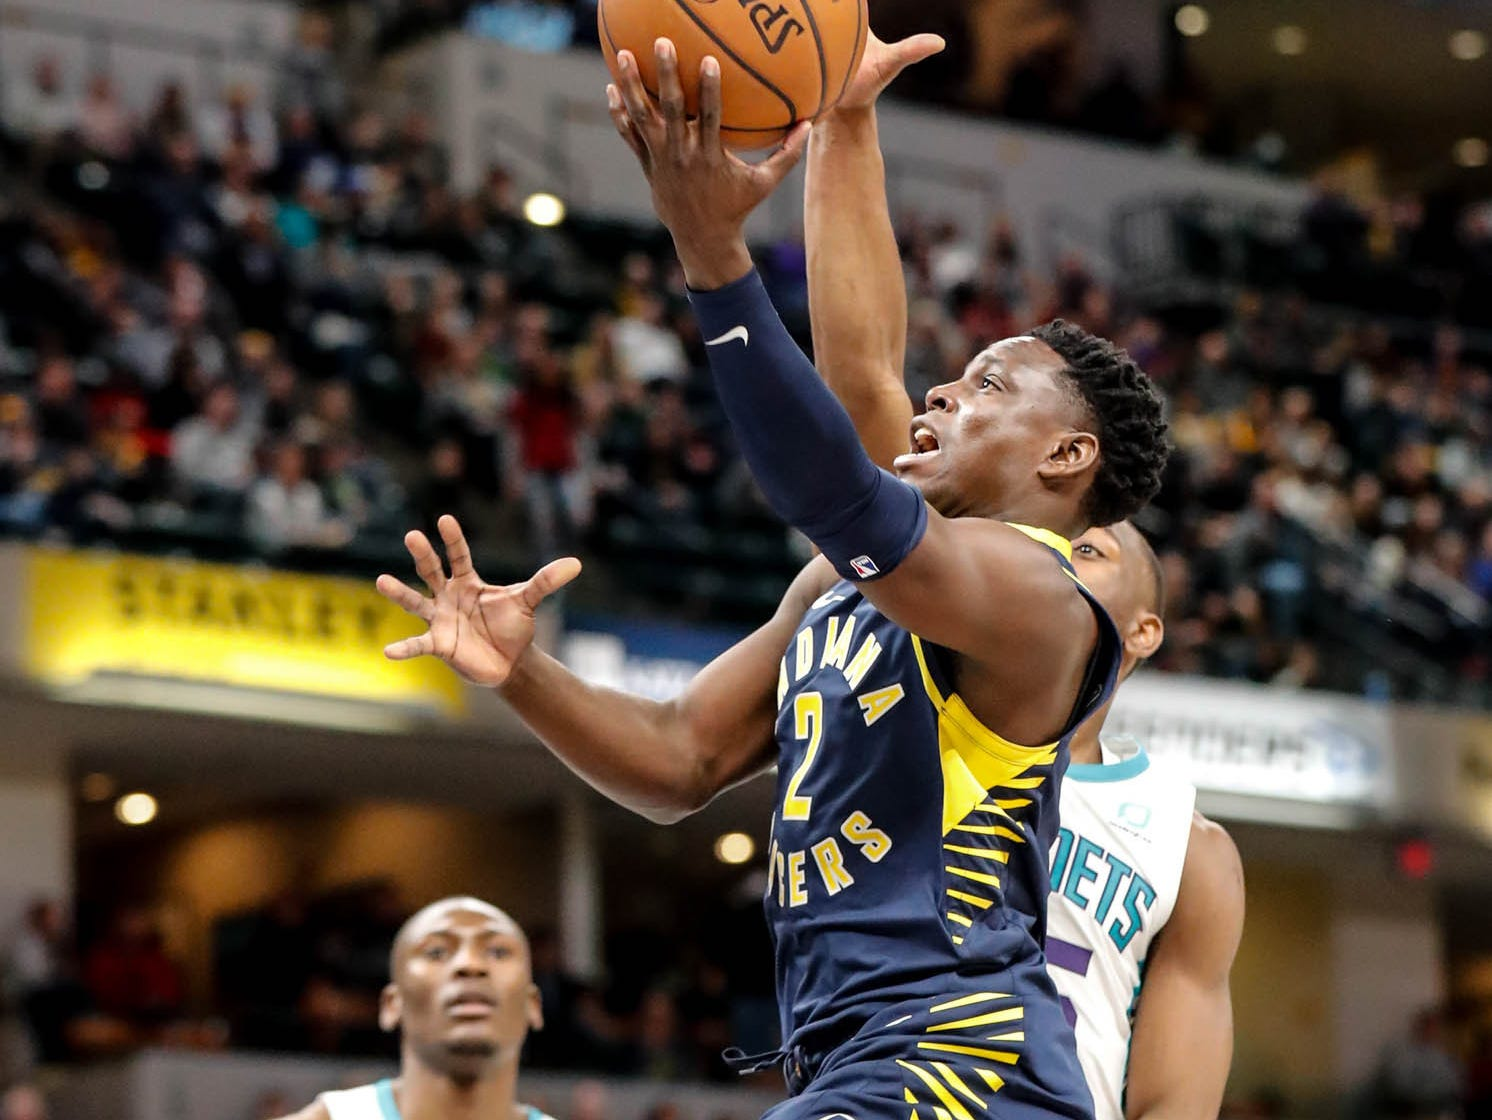 Indiana Pacers guard Victor Oladipo (4) shoots a layup past Charlotte Hornets forward Nicolas Batum (5), and Charlotte Hornets center Bismack Biyombo (8), during a game between the Pacers and Hornets at Bankers Life Fieldhouse on Sunday, Jan. 20, 2019.